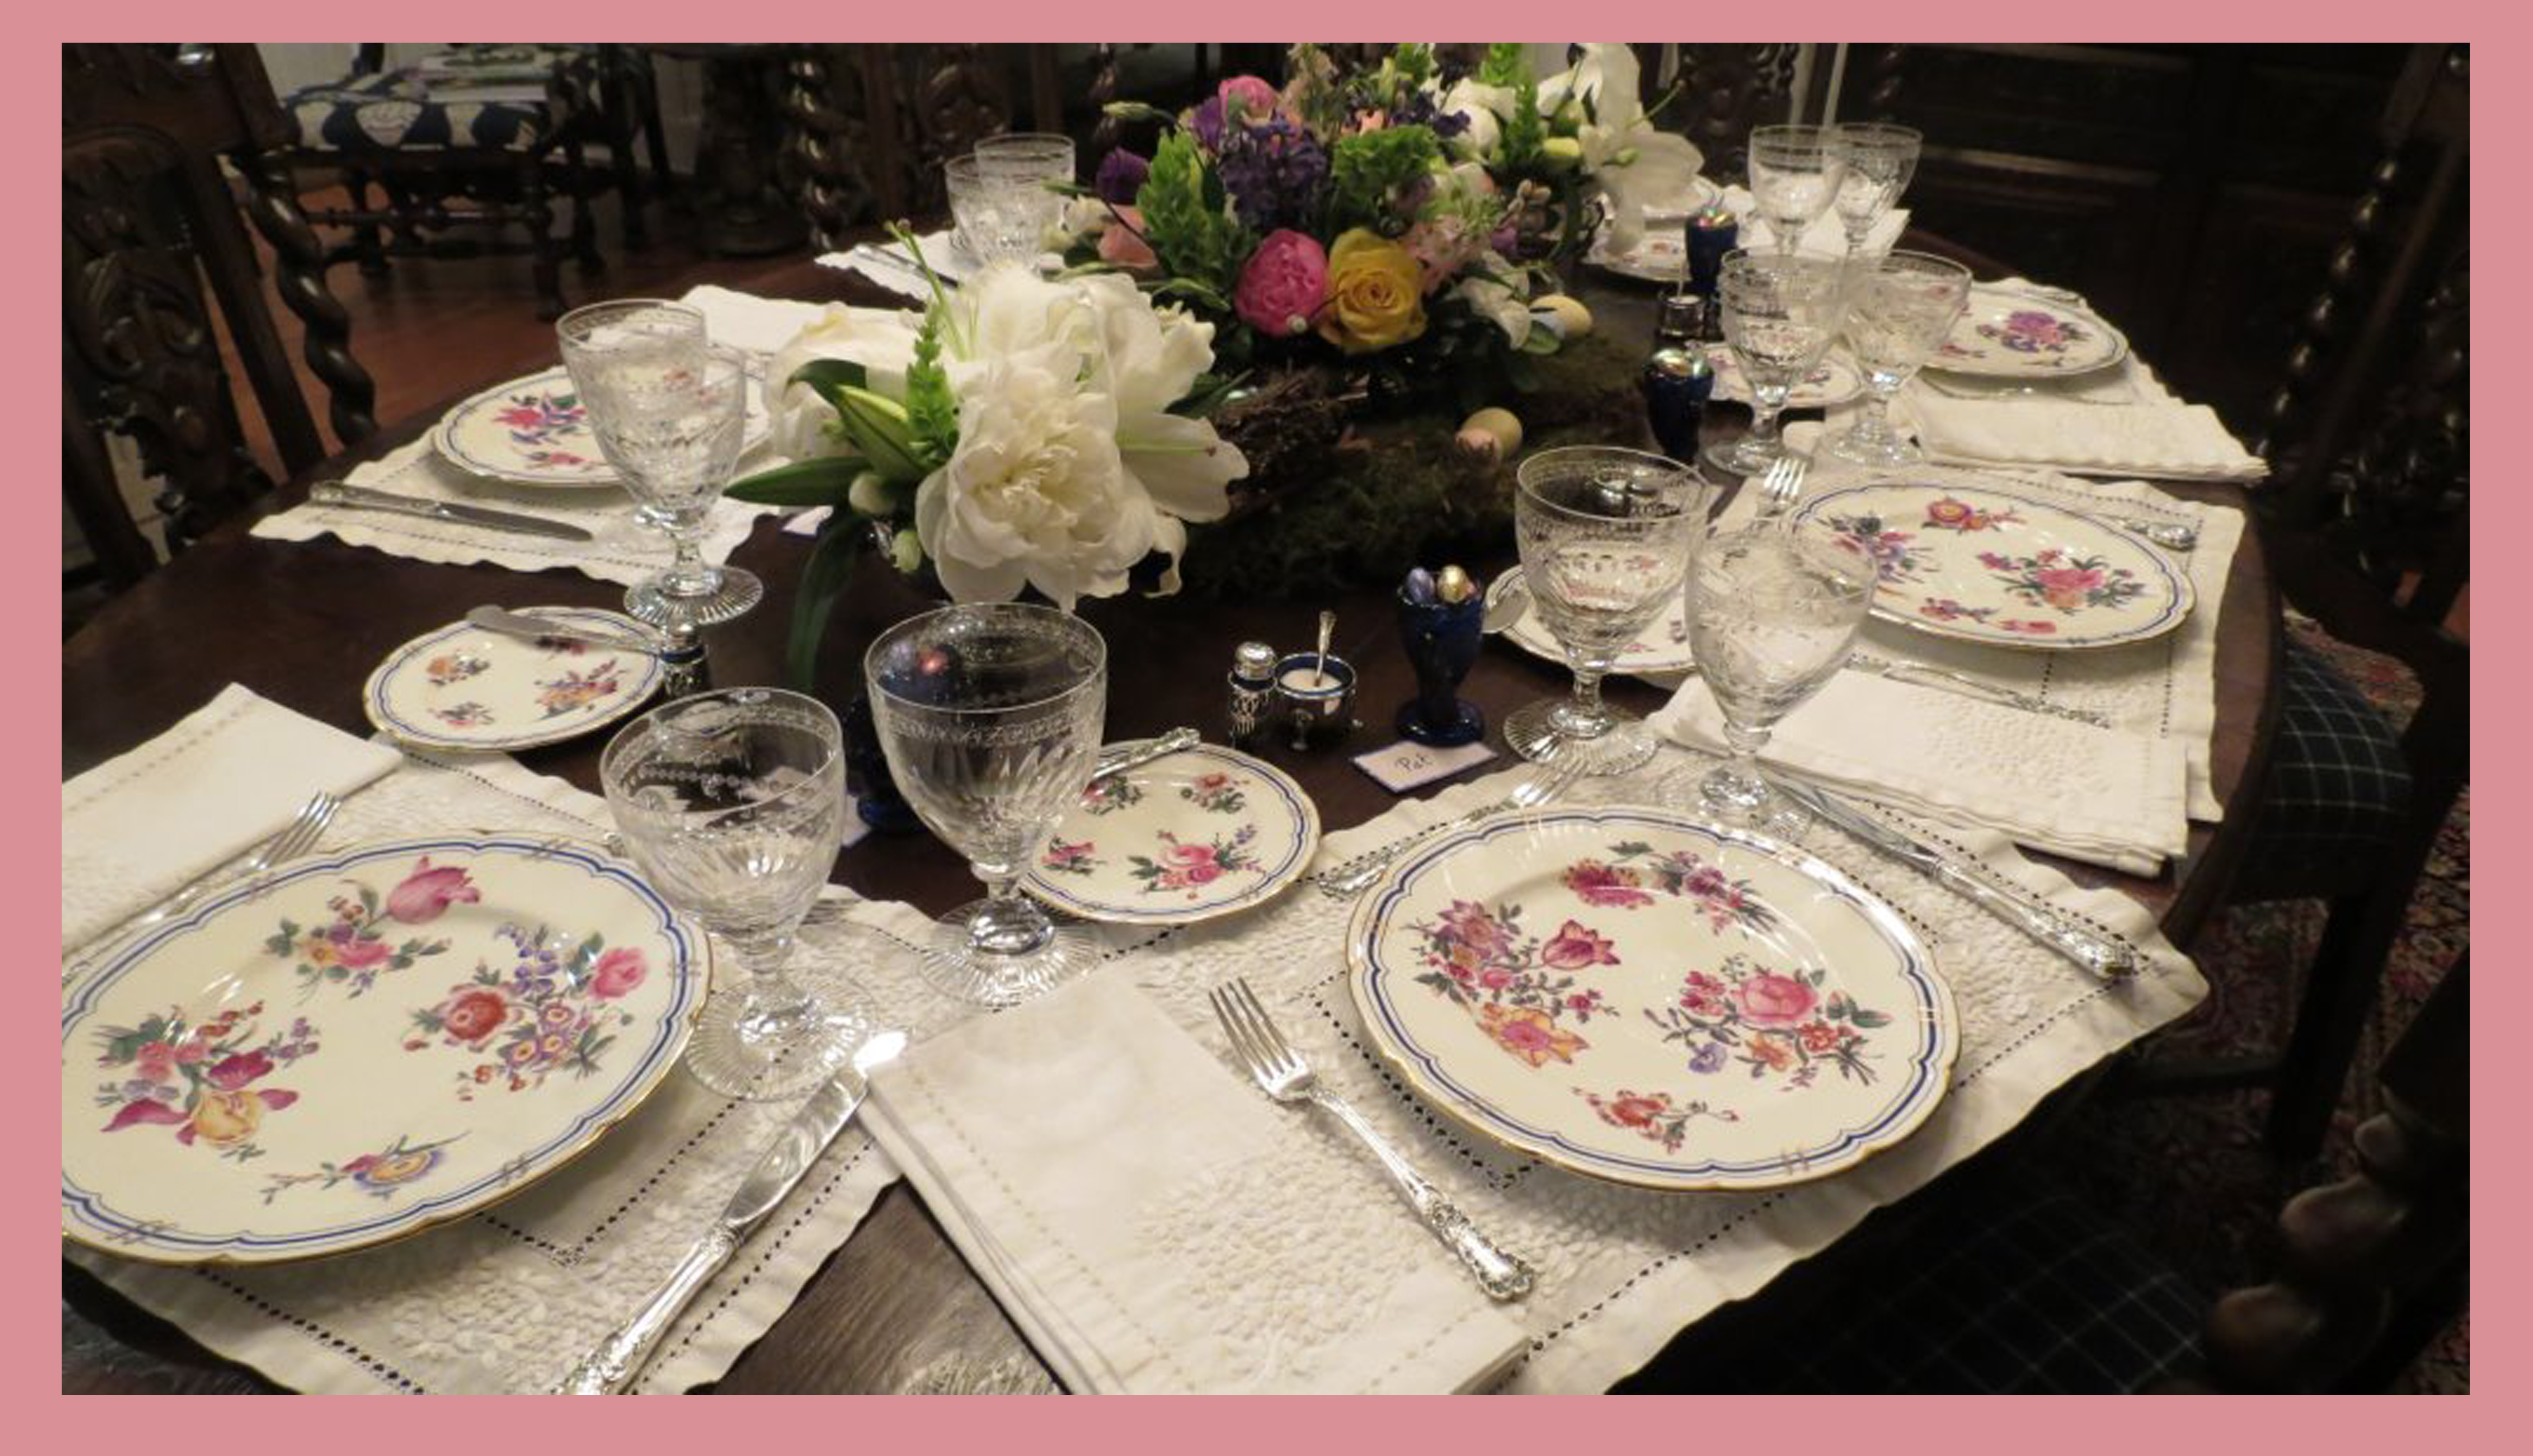 easter lunch 2014 presented by north carolina interior designer and author kathryn crisp greeley the collected tabletop